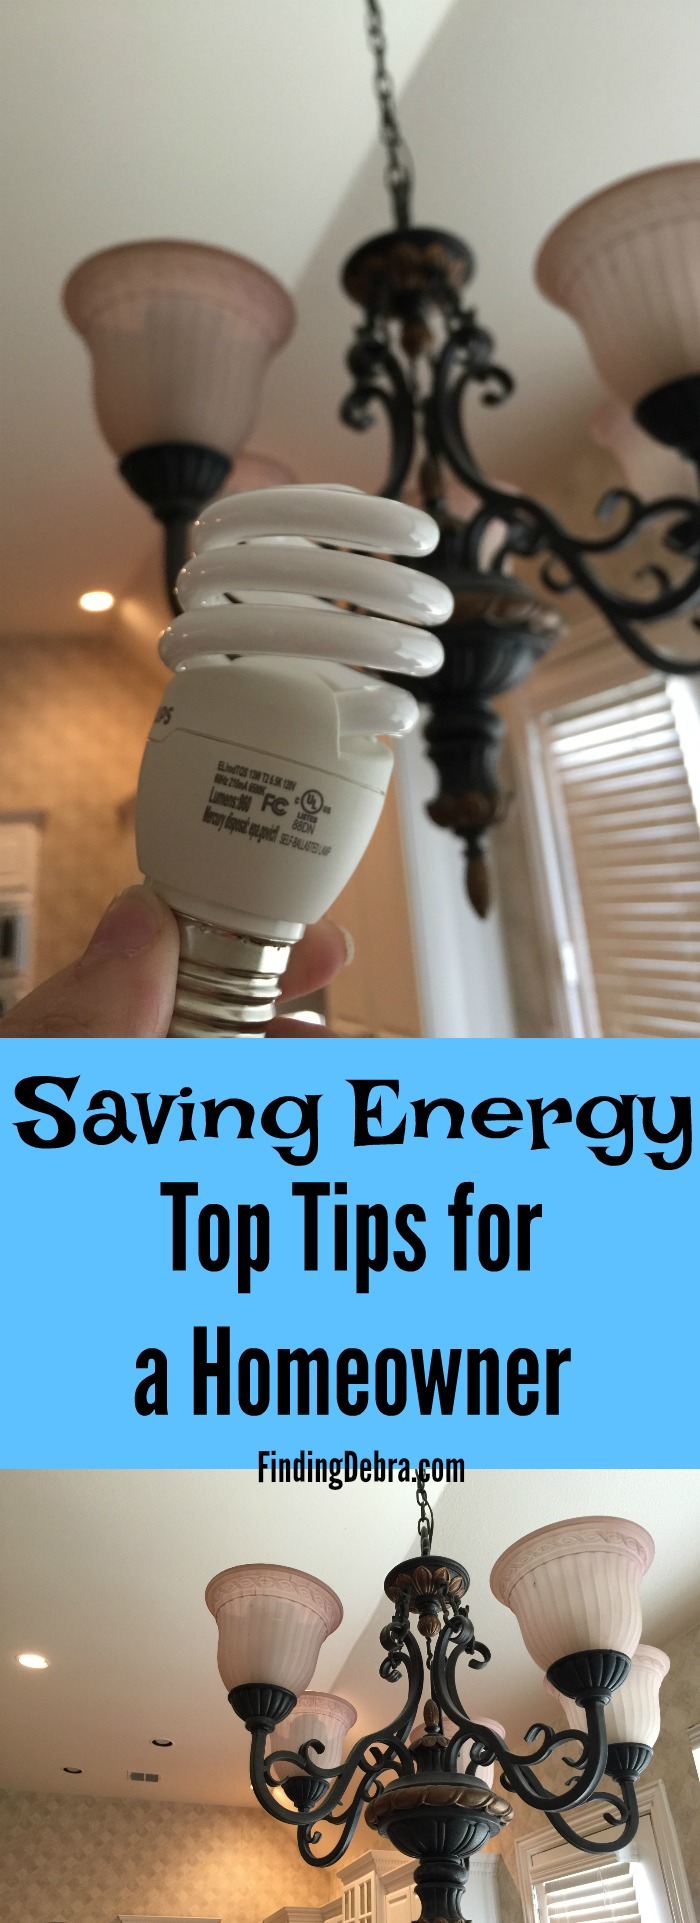 Saving Energy Top Tips for a Homeowner